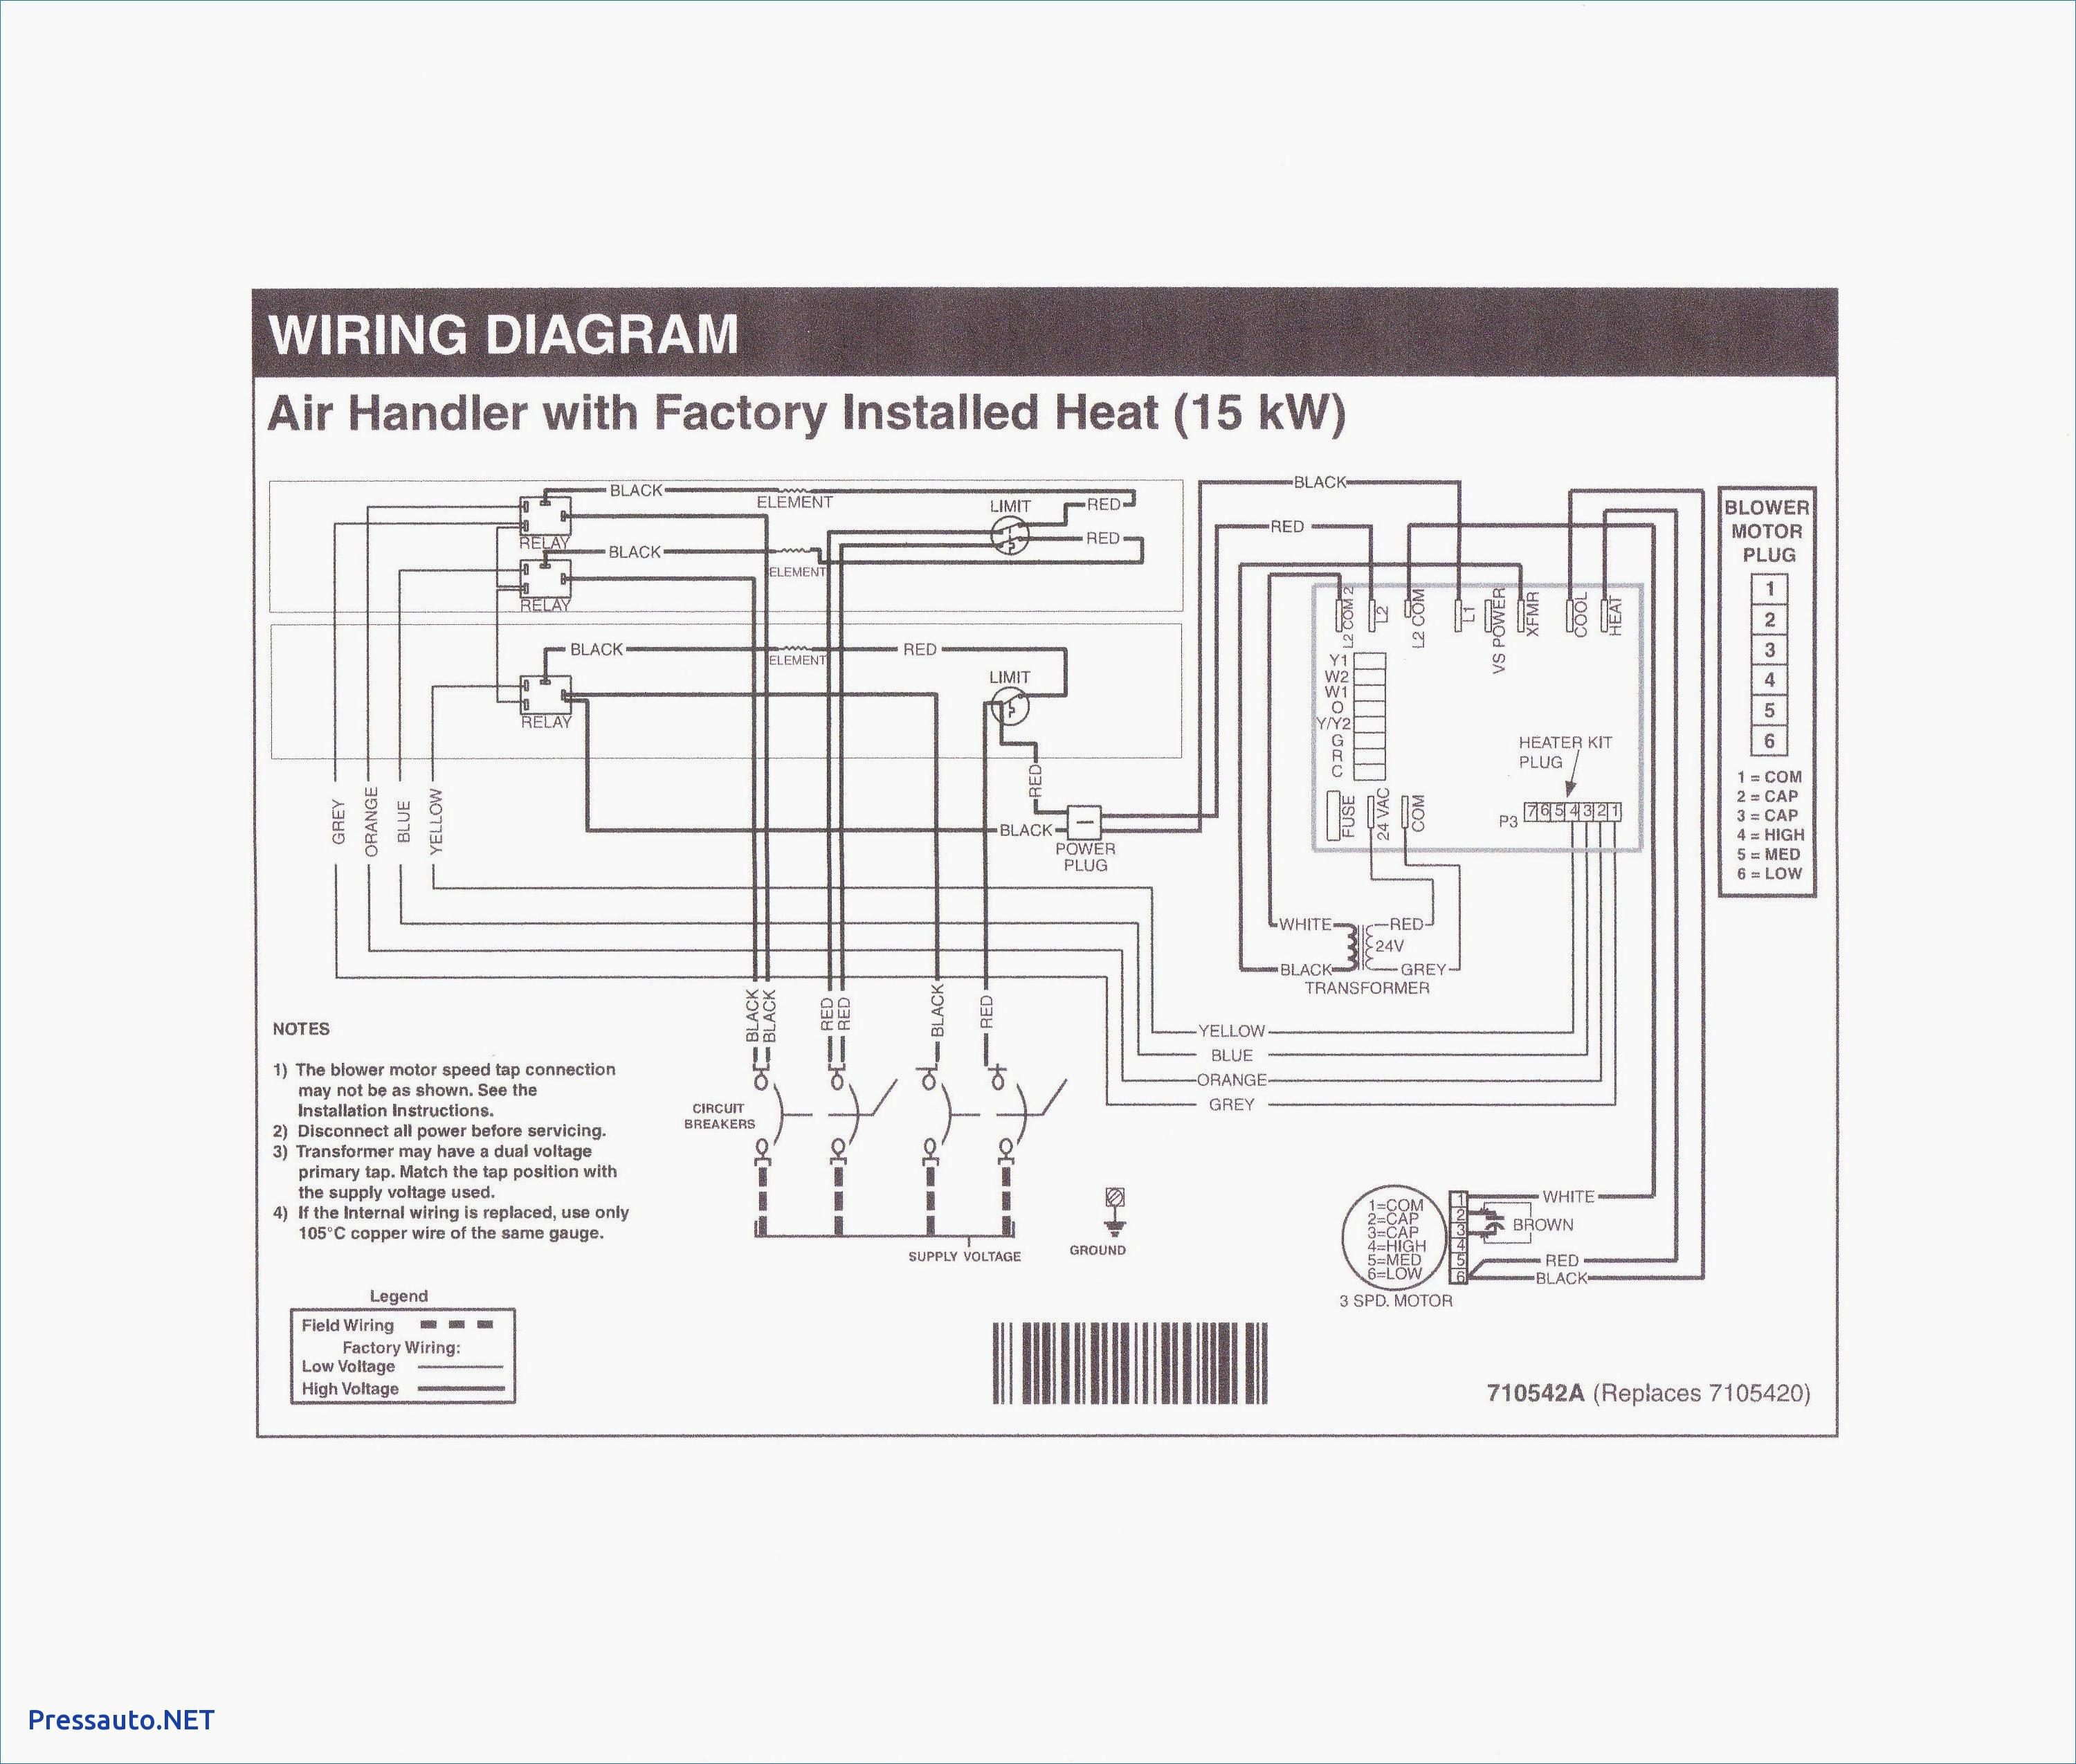 Electric Furnace Wiring Diagram Sequencer Natebird Me Stunning Heat - Electric Furnace Wiring Diagram Sequencer